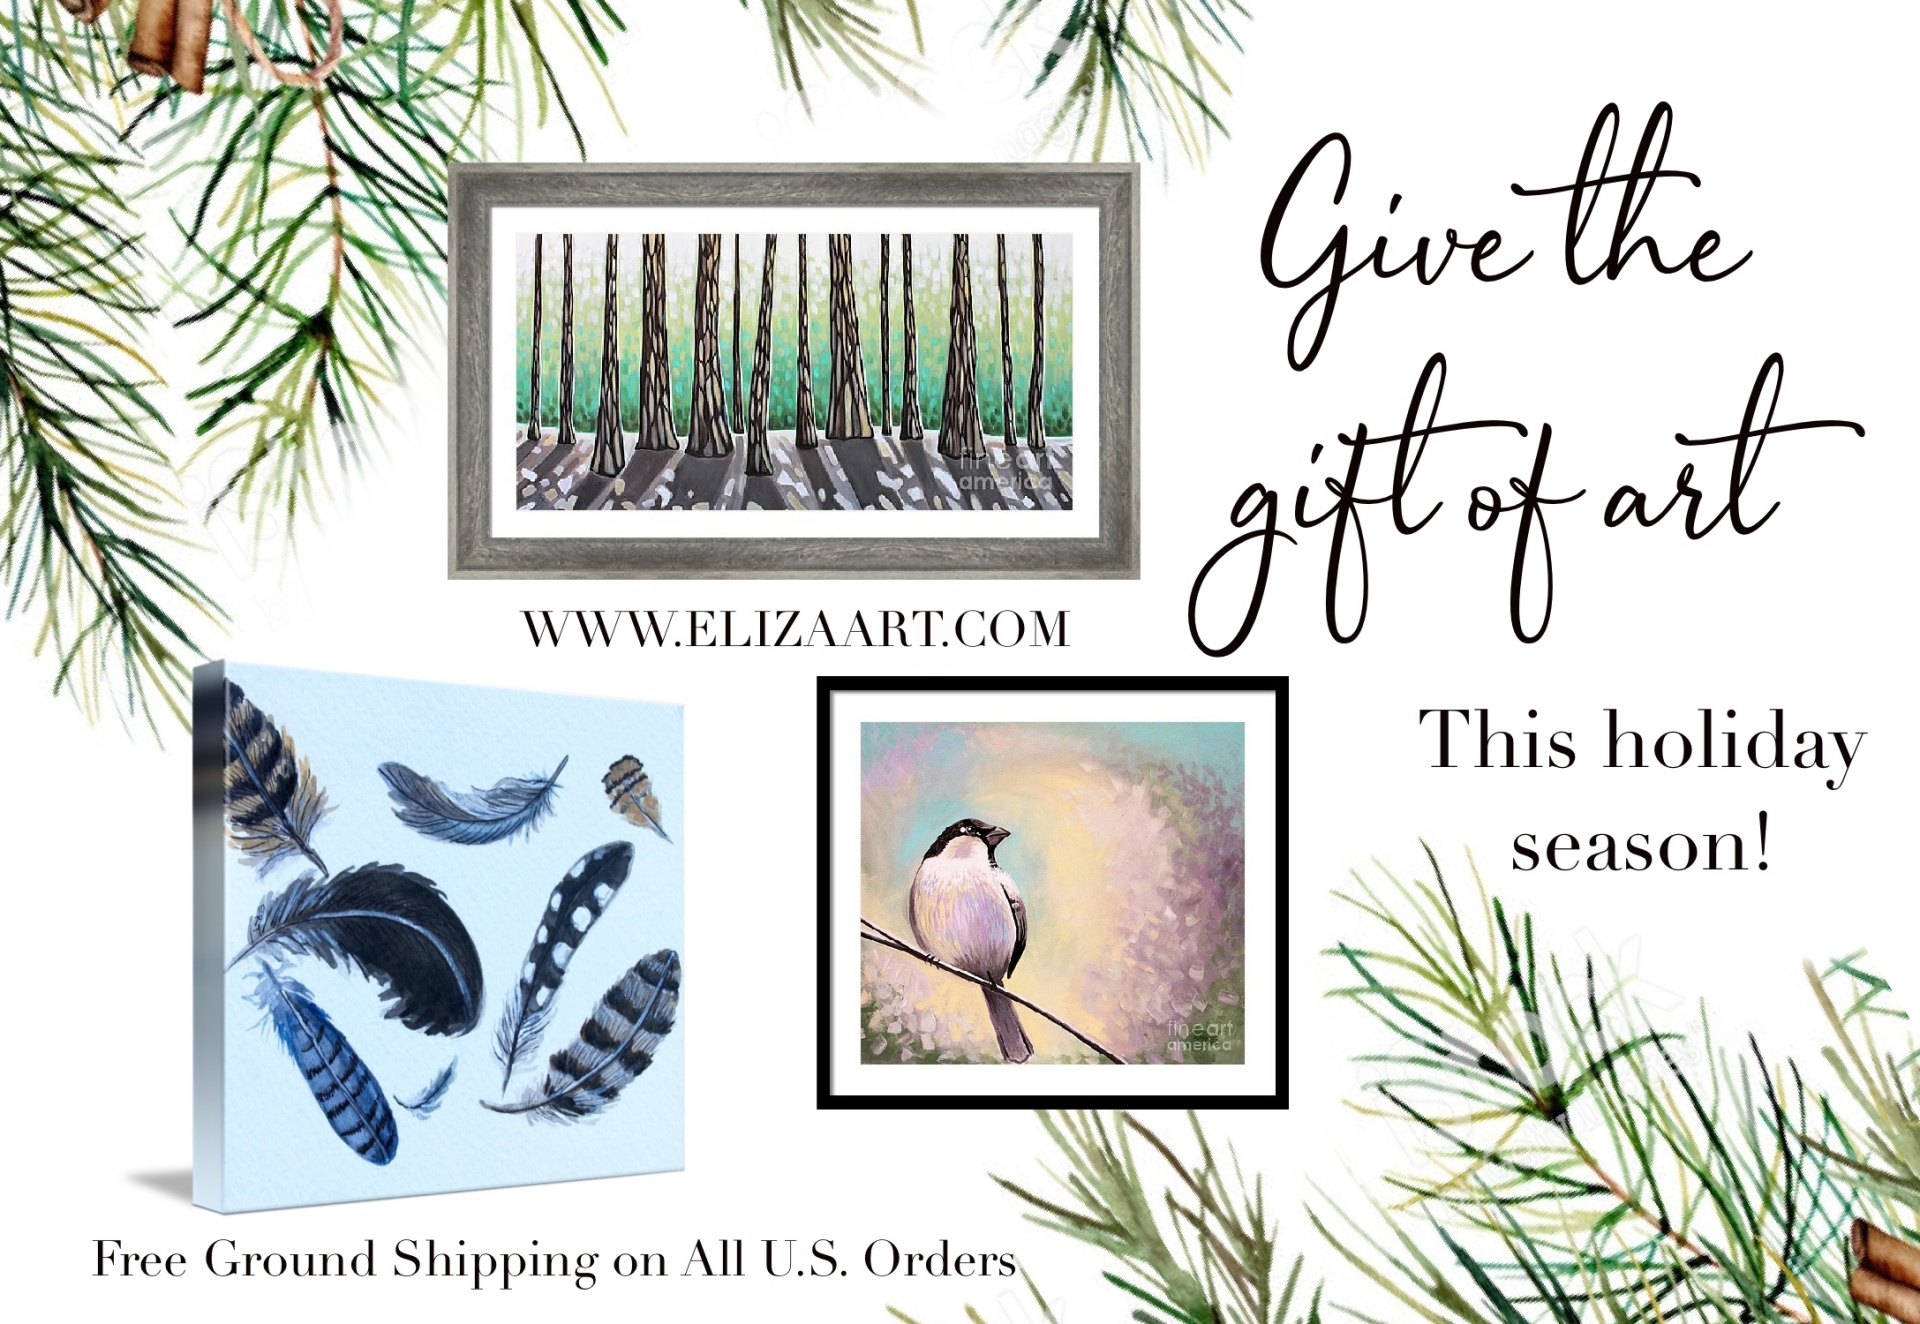 Give the Gift of Art This Holiday Season!